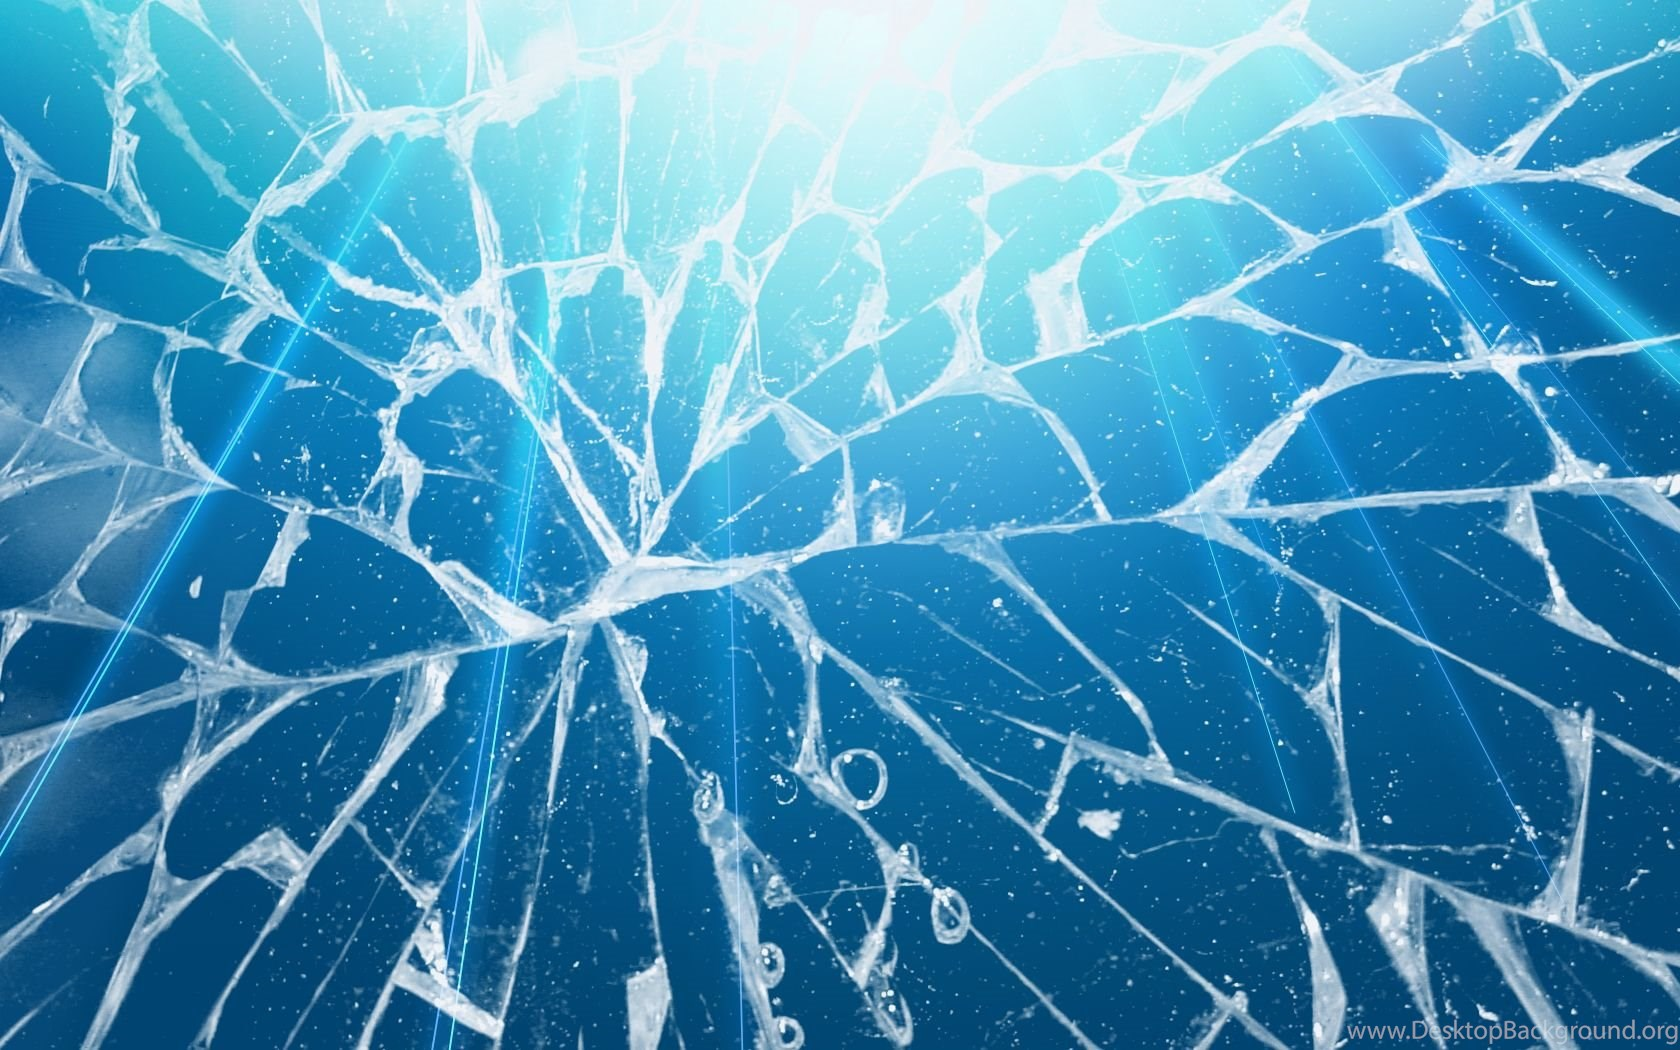 10318 Windows 7 Broken Screen Awesome Wallpapers Attachment